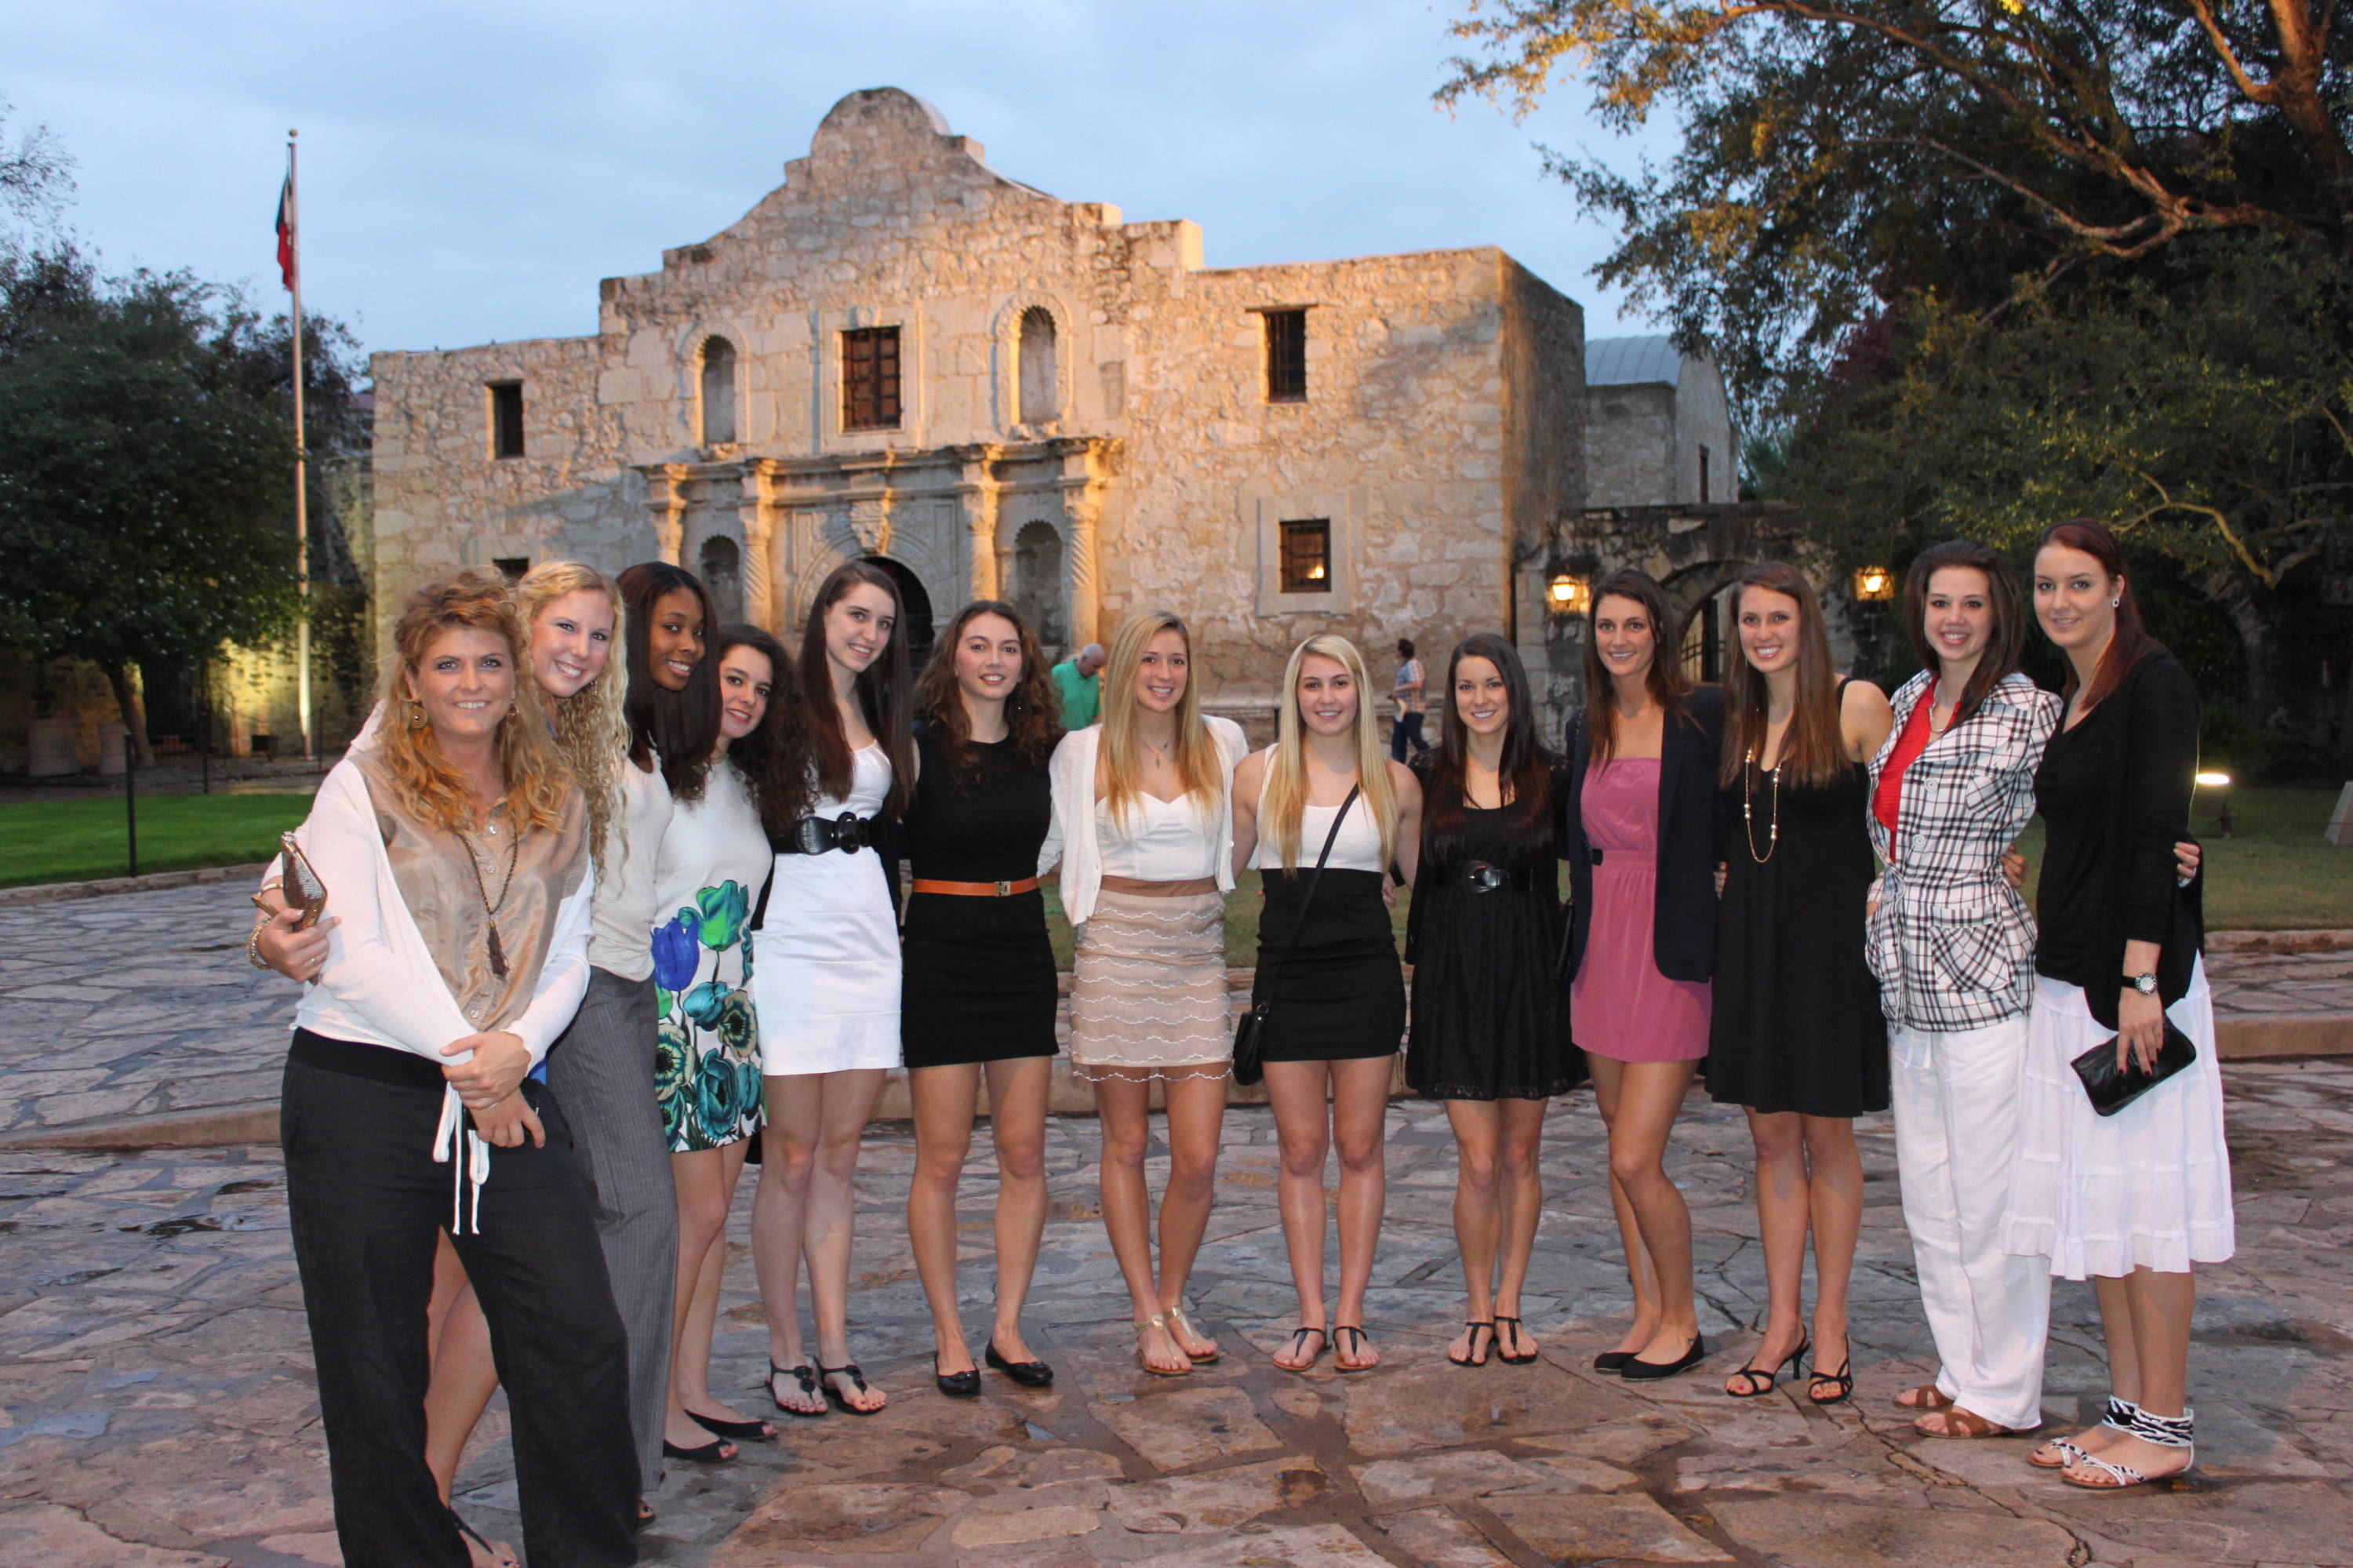 The ladies again in front of The Alamo.